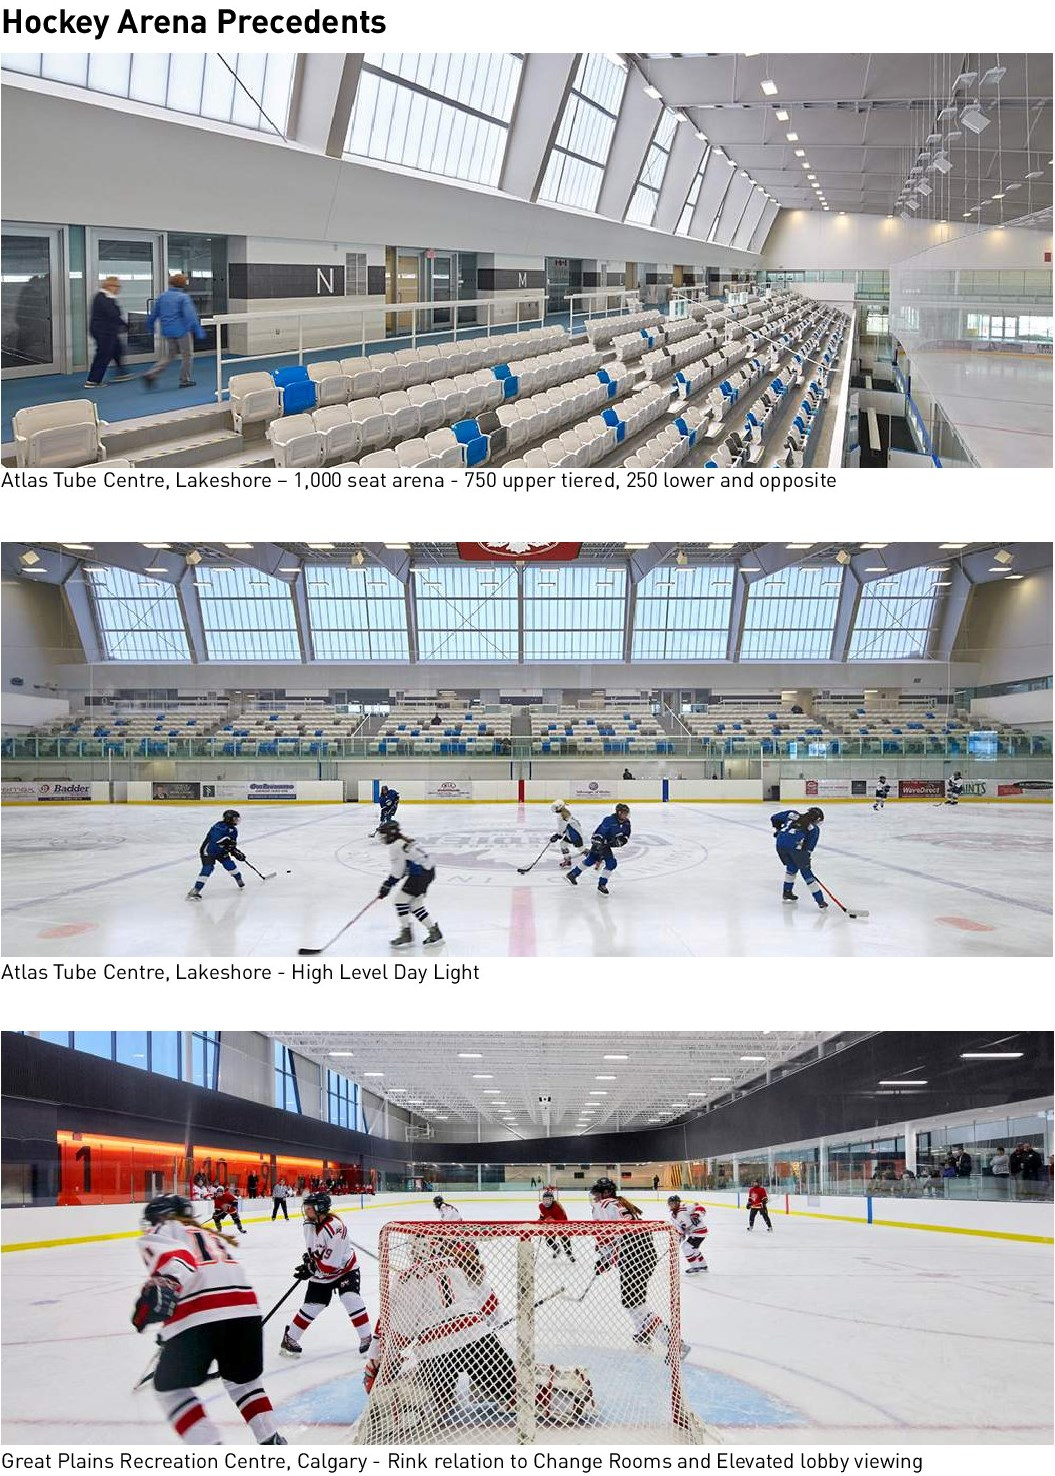 Hockey-Arena-Precedents